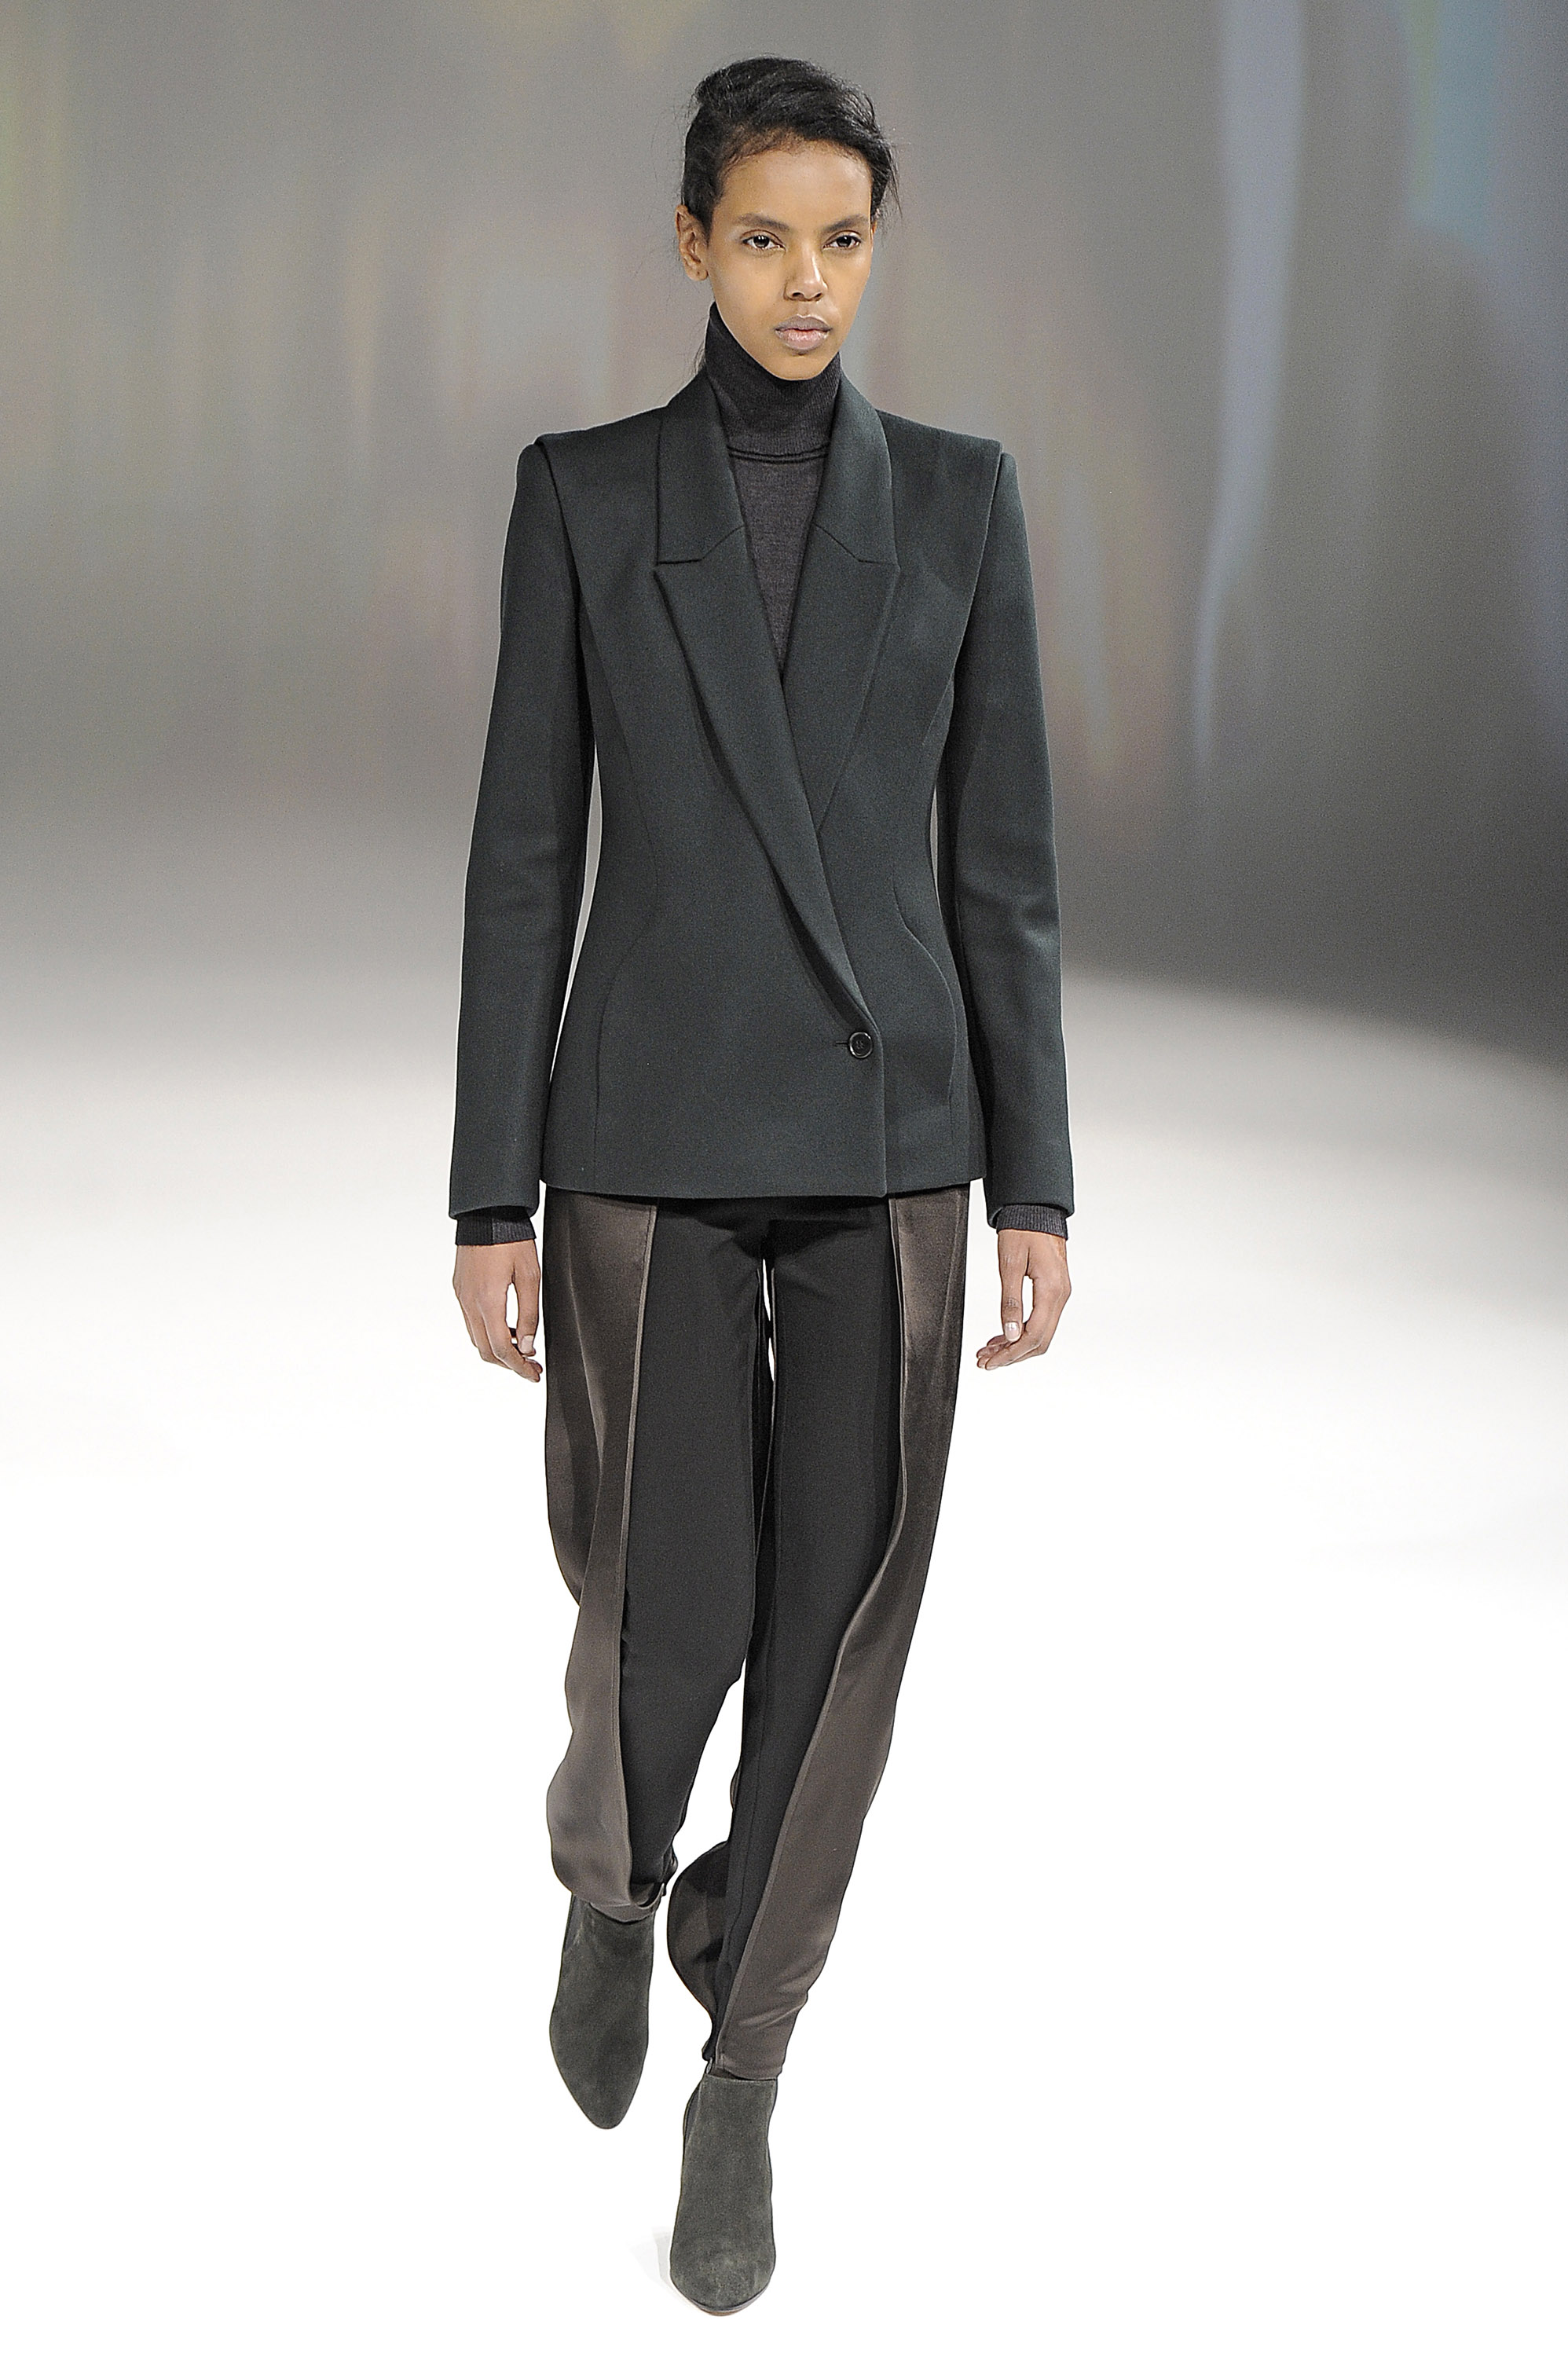 Hussein Chalayan Autumn Winter 2013 Paris Fashion Week Copyright Catwalking.com 'One Time Only' Publication Editorial Use Only